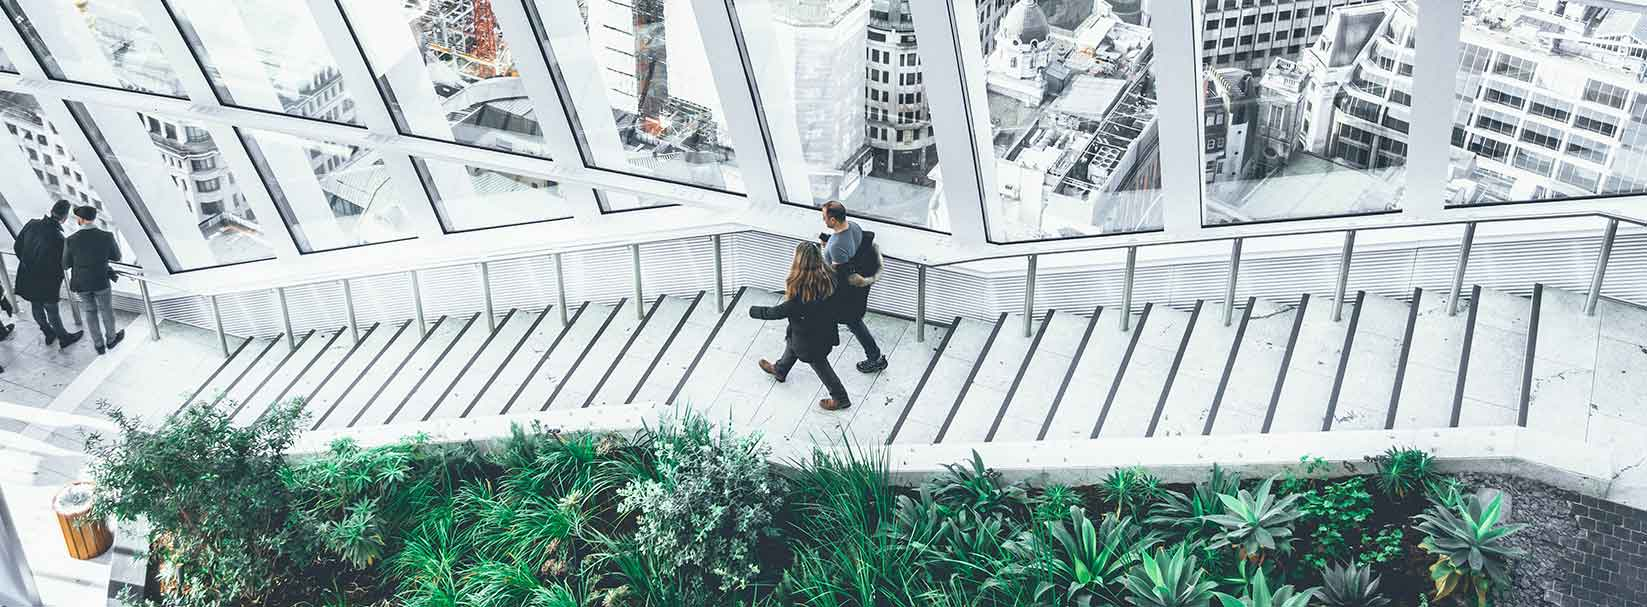 Where there's nature, there's well-being and productivity in the workplace